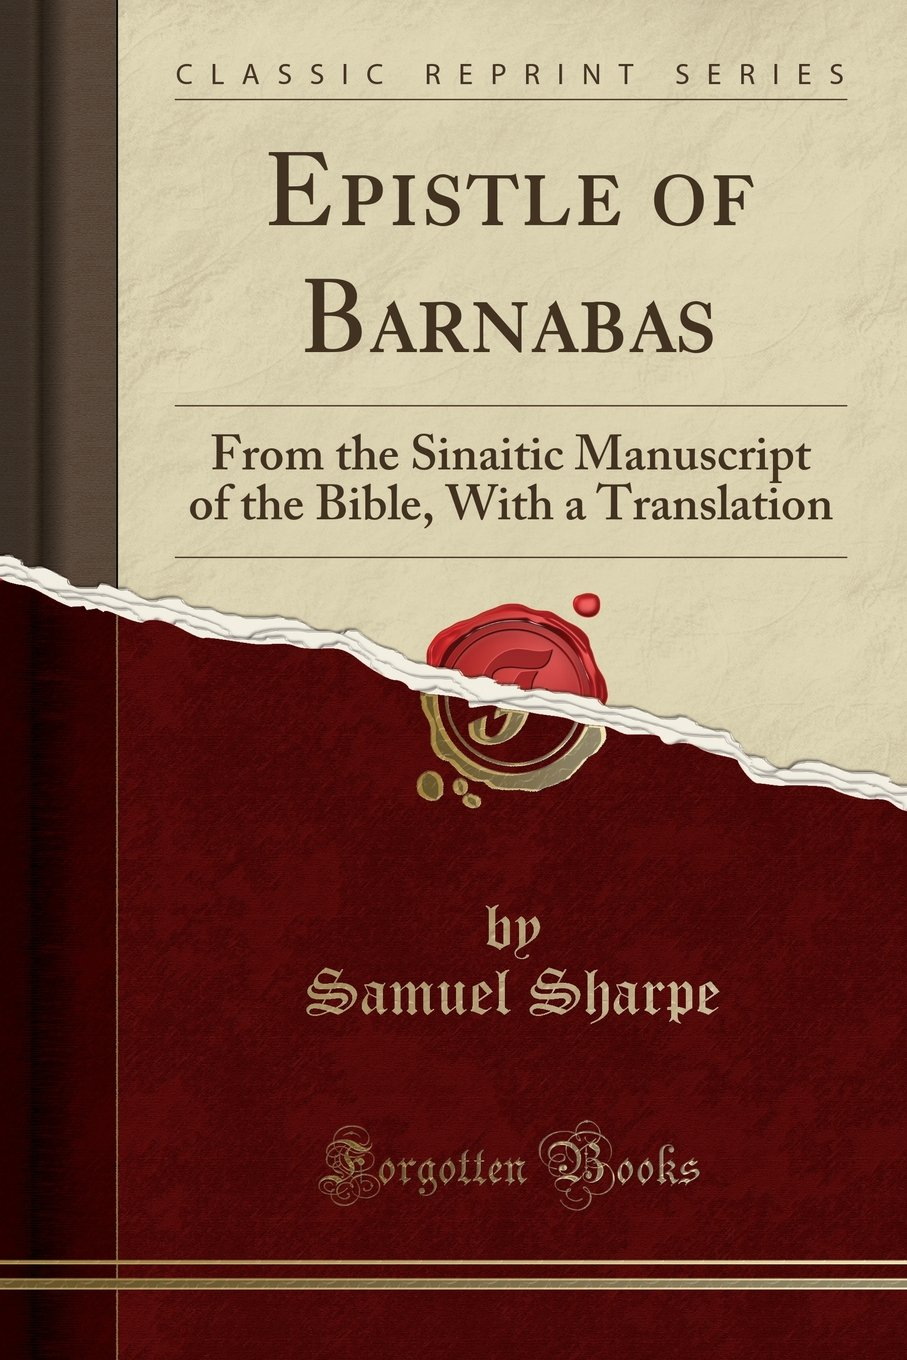 Read Online Epistle of Barnabas: From the Sinaitic Manuscript of the Bible, With a Translation (Classic Reprint) pdf epub